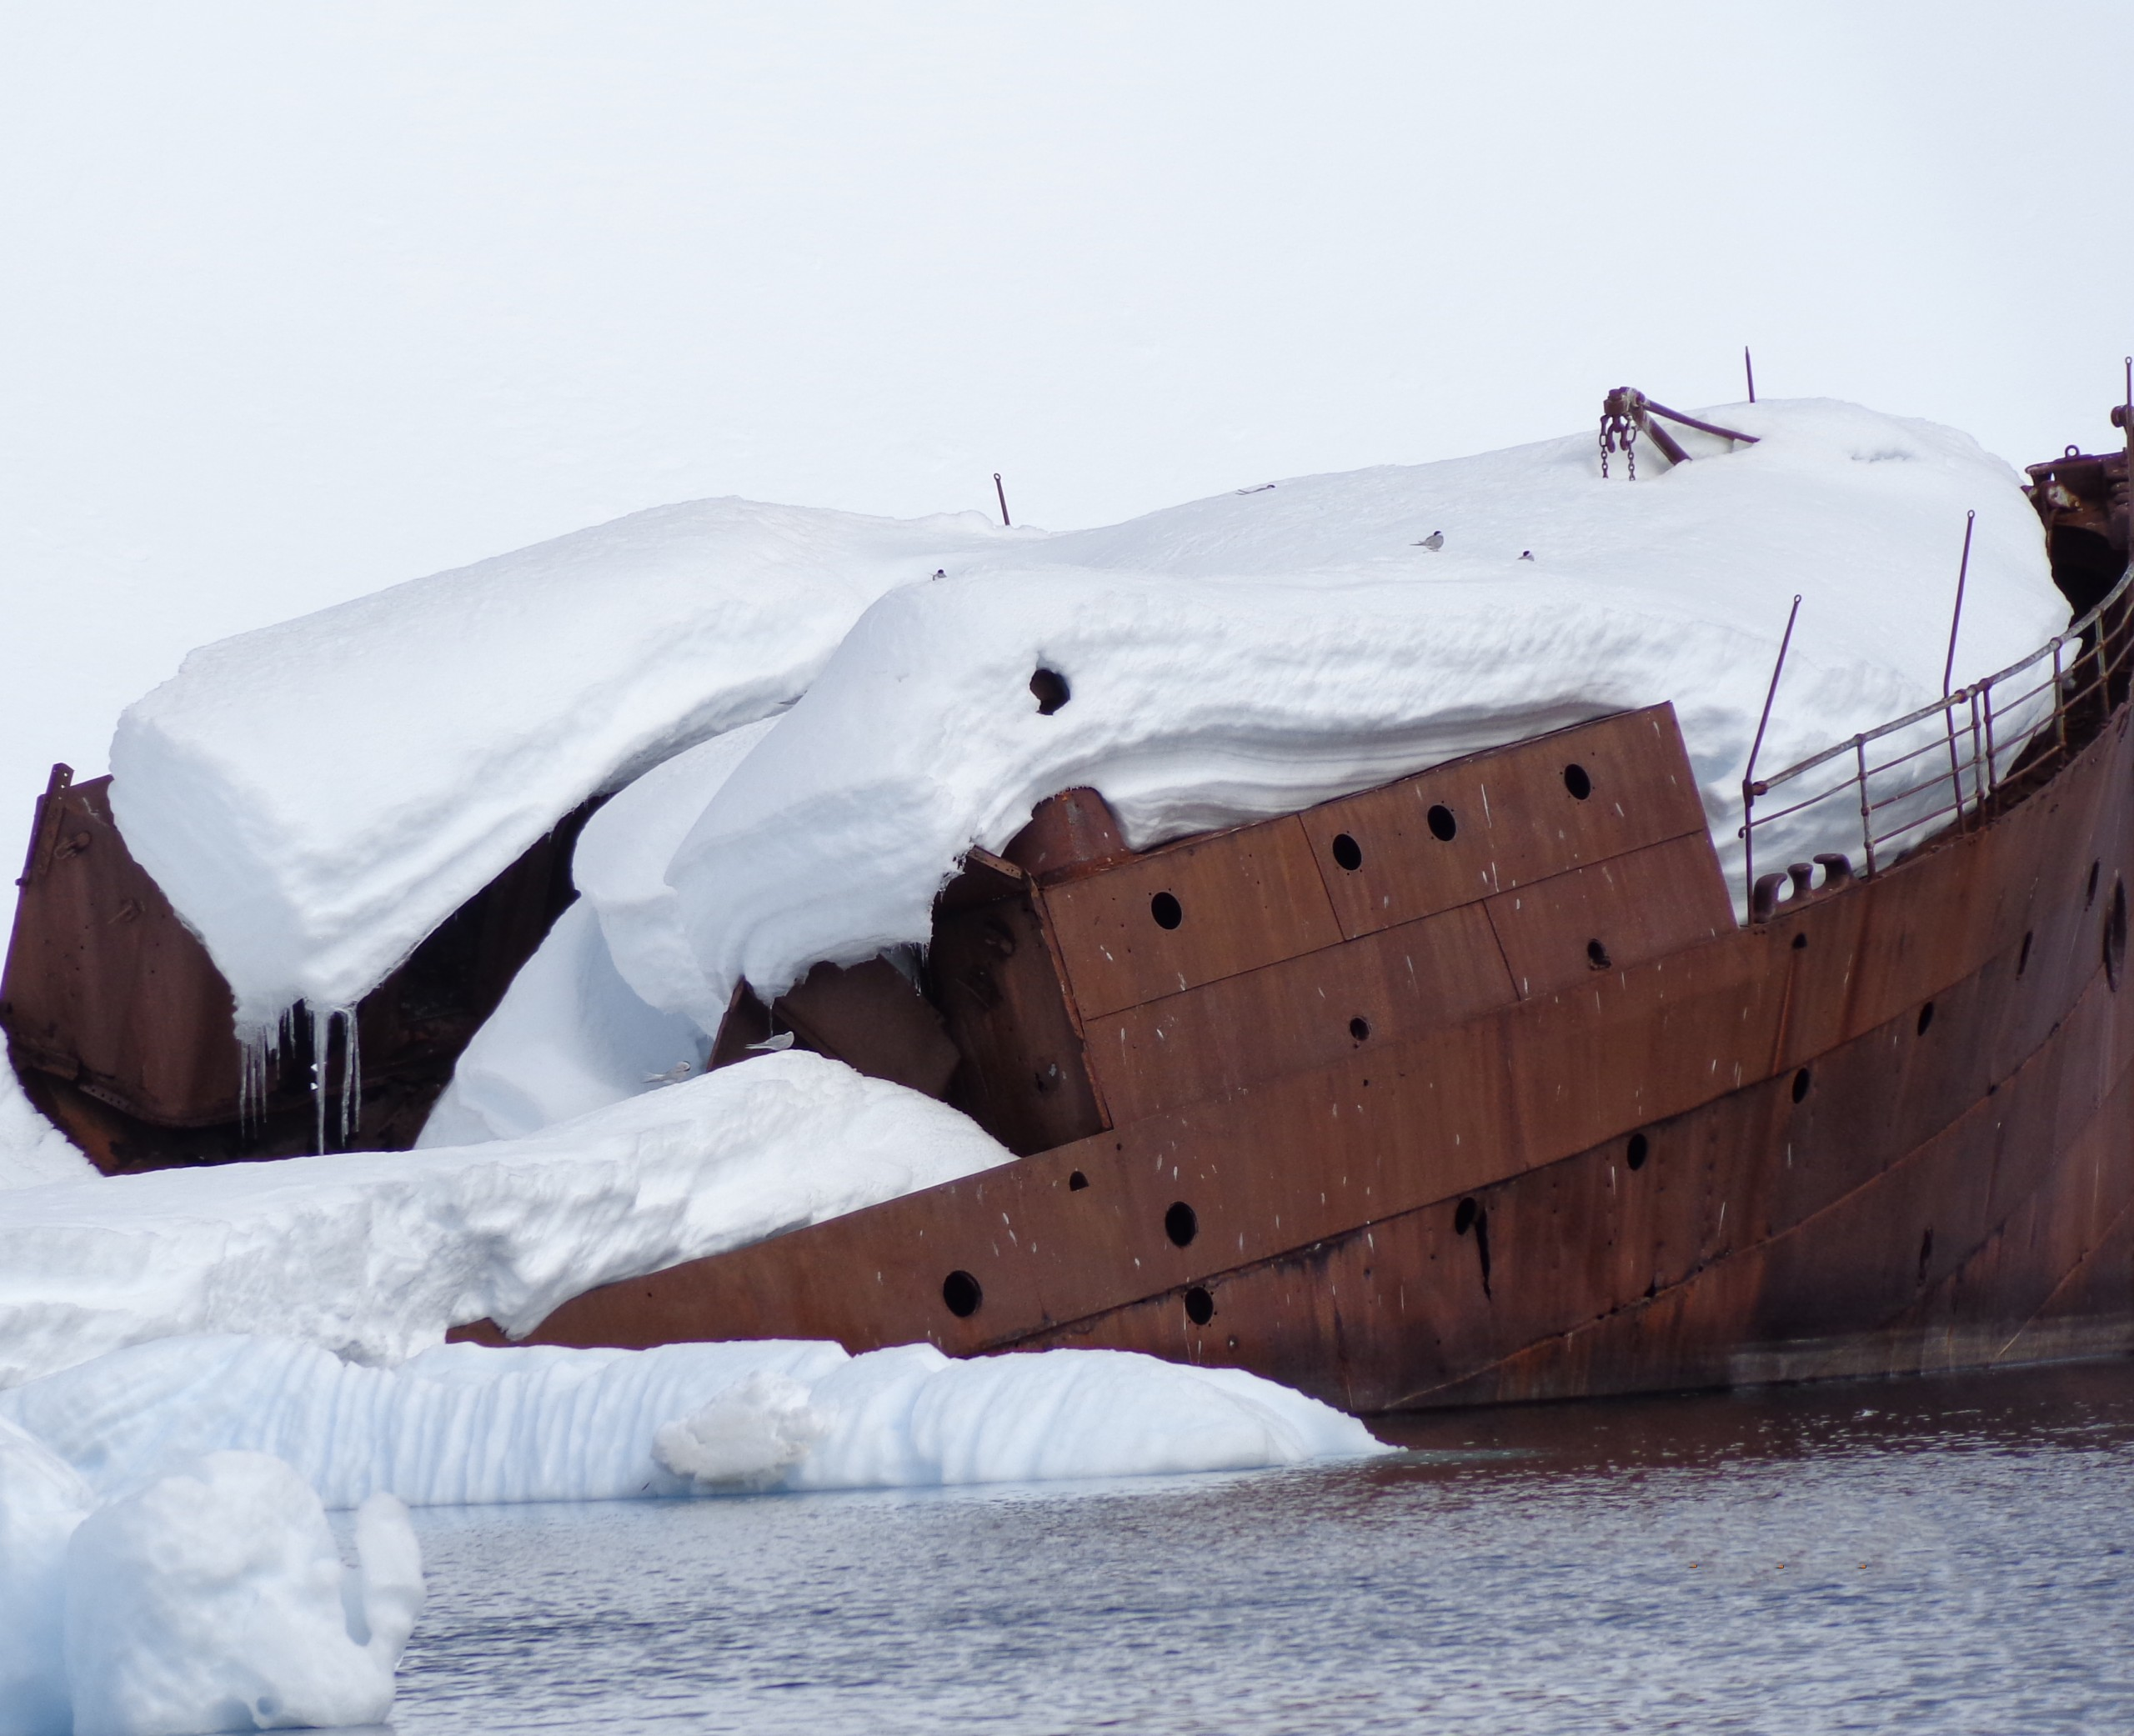 Shipwreck in the Snow